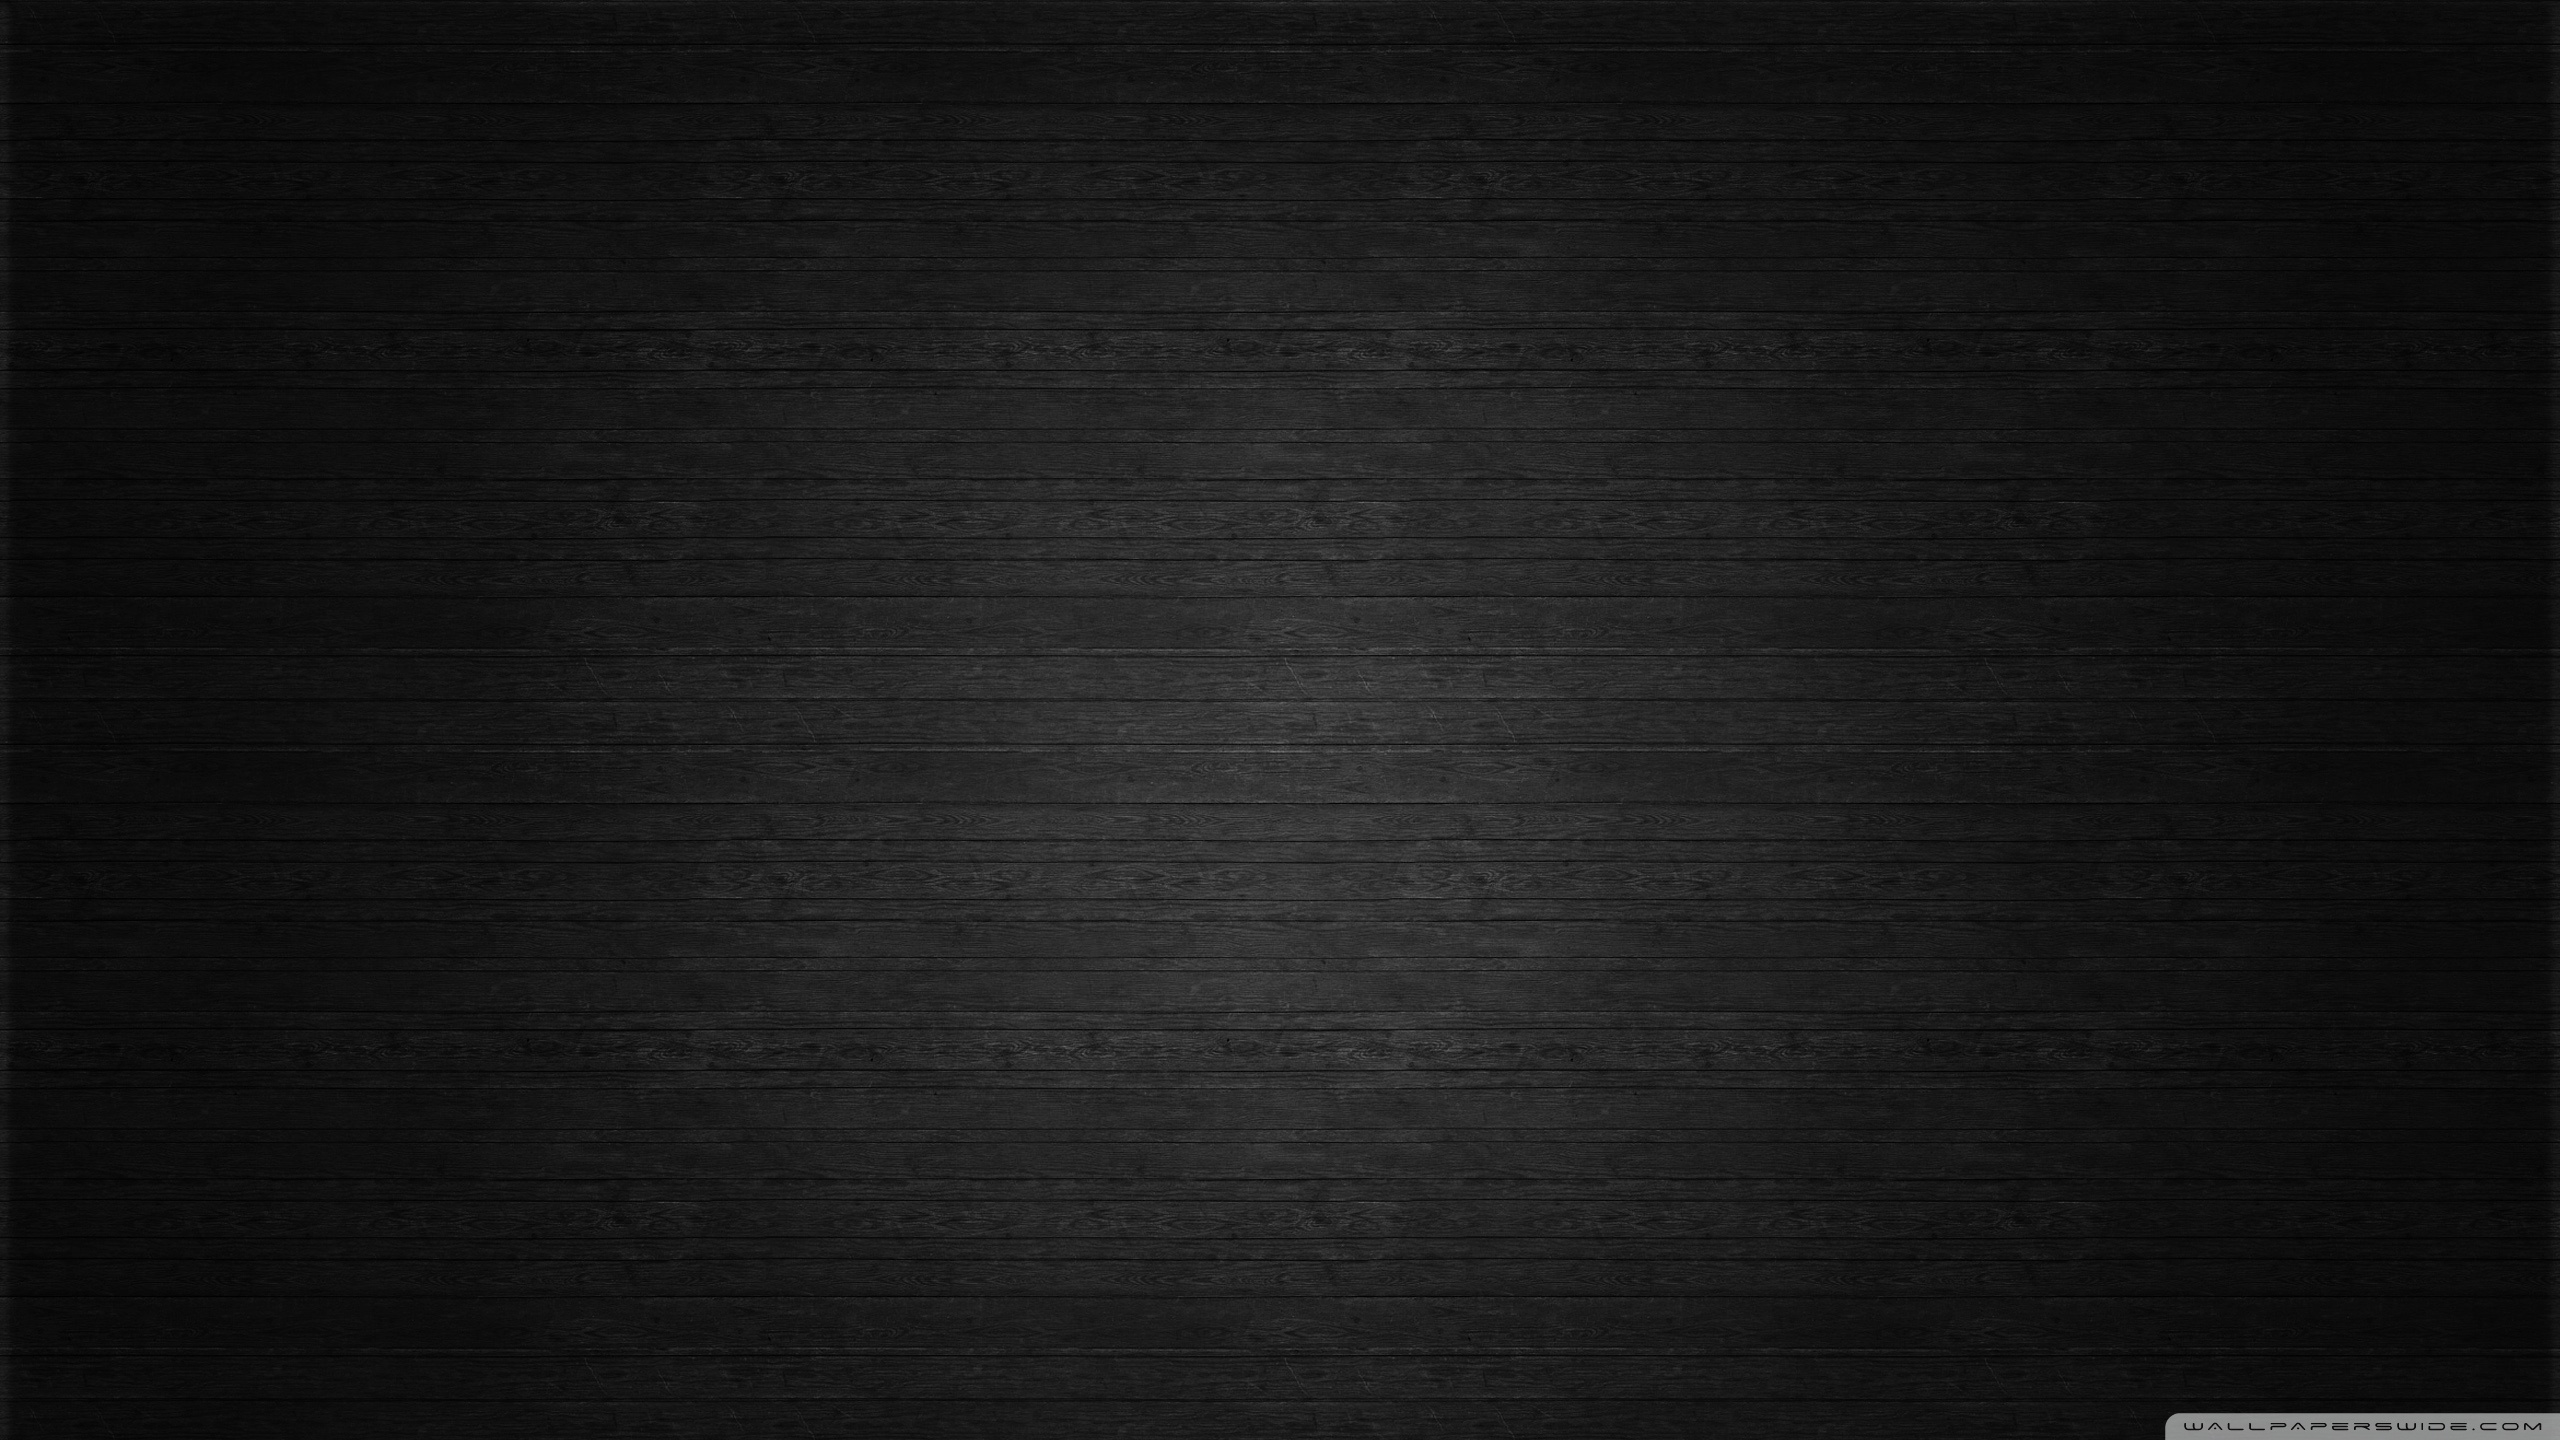 The Darkness Black Background Wood I Wallpaper X 151 Black